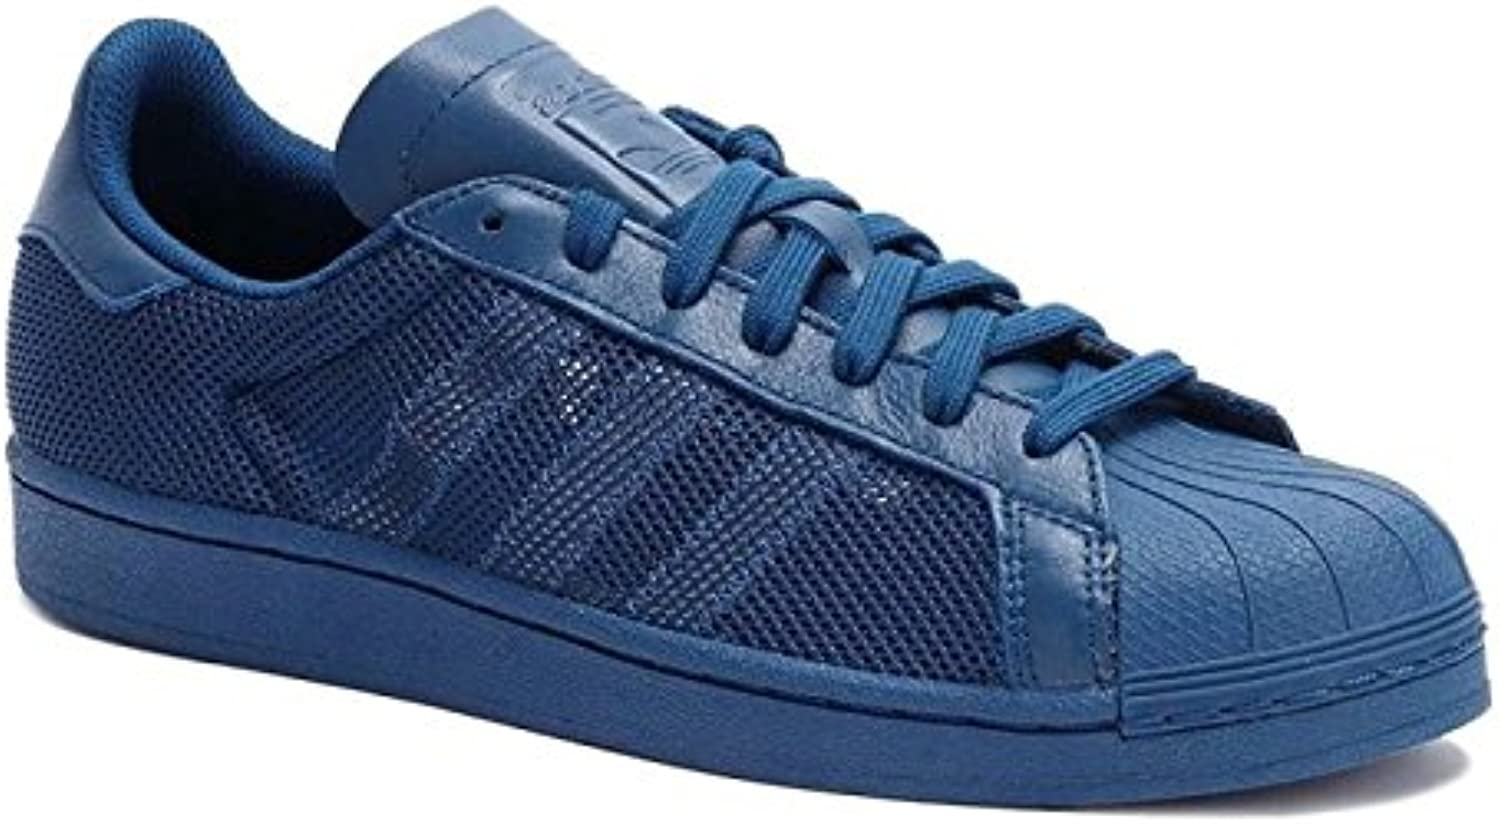 adidas Originals Superstar Triple Herren Turnschuhe / Schuhe